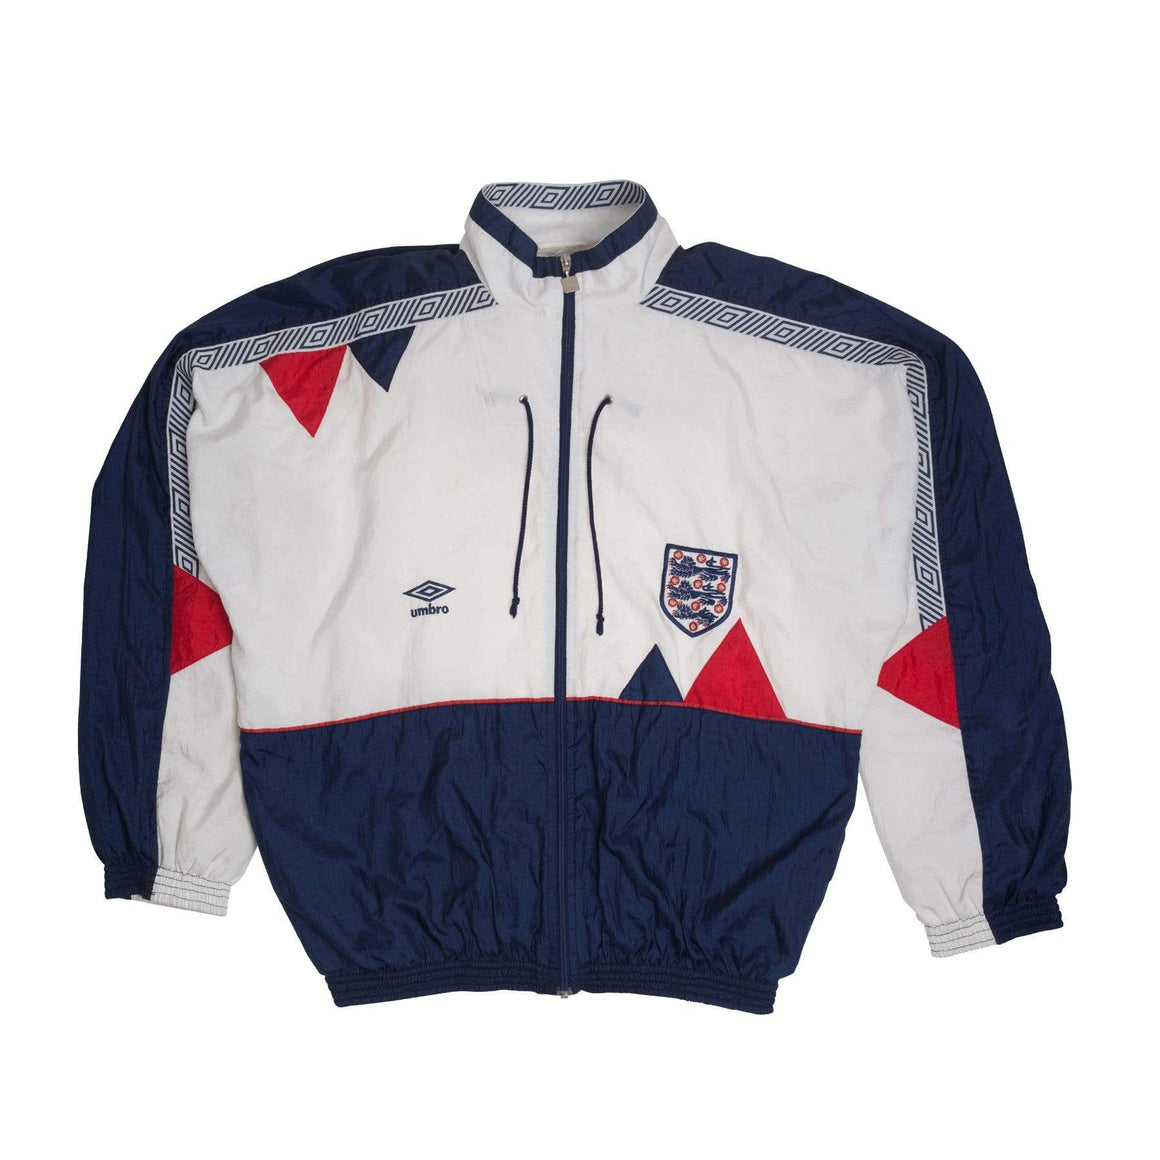 Football Shirt Collective 1990 England x Umbro Track Top (Excellent)